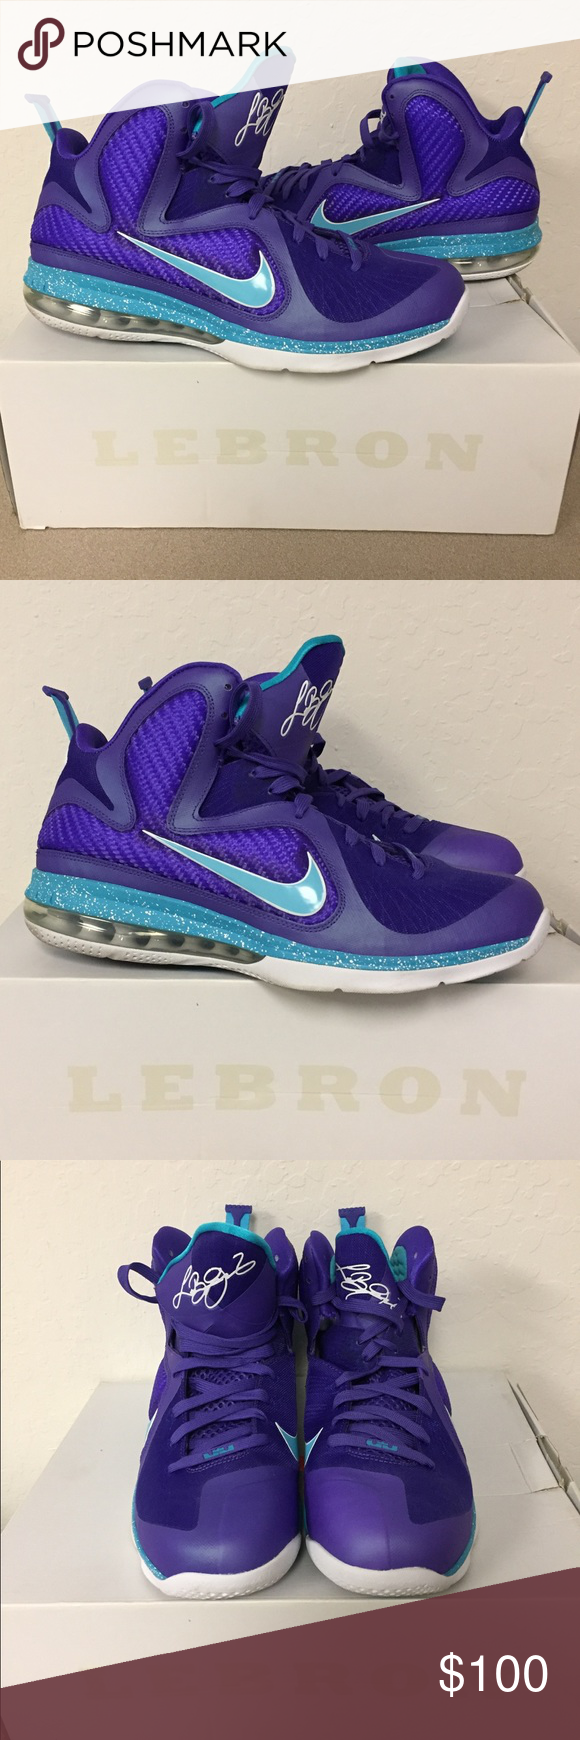 quality design 309d6 40112 Nike Lebron 9 Summit Lake Hornets Basketball Shoes Brand   Nike Color   Pure  Purple